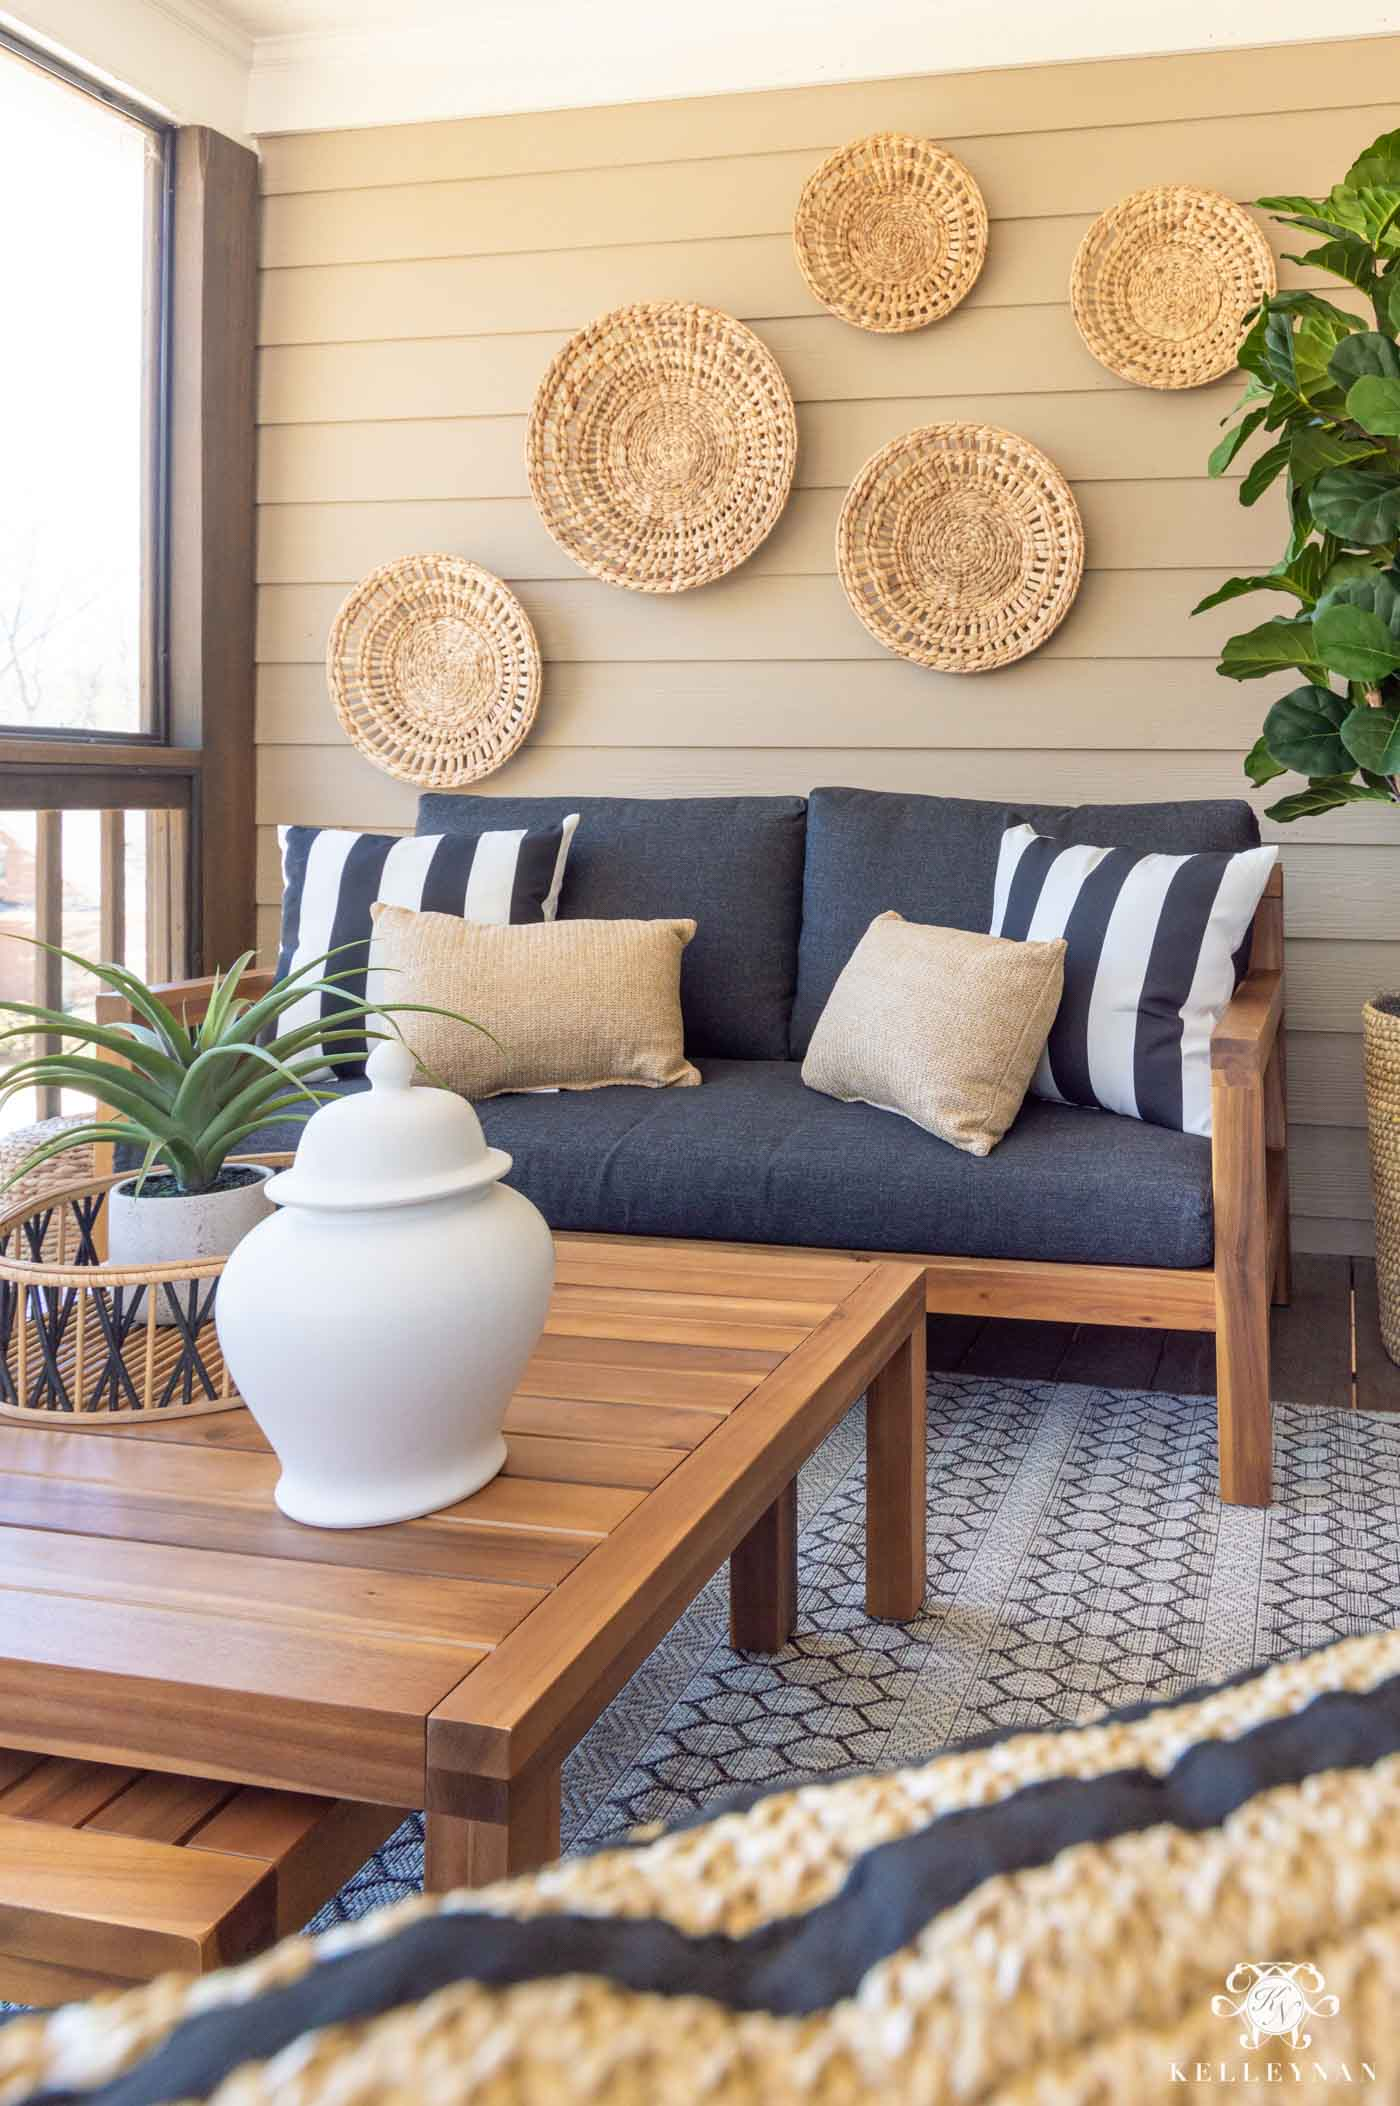 Outdoor Living and Cozy Decorating Ideas